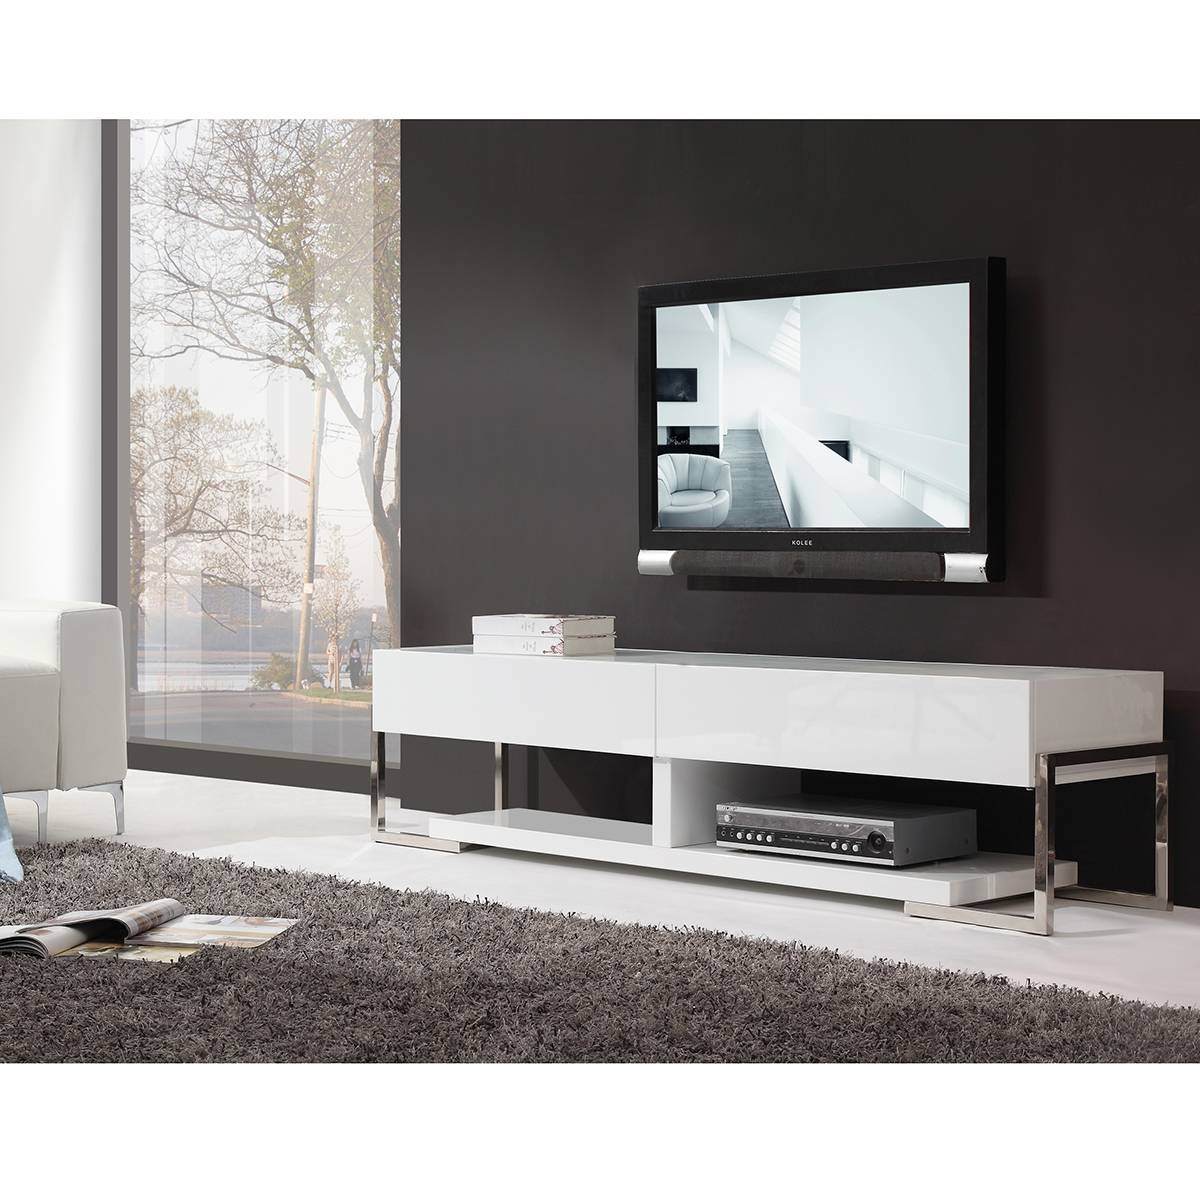 "B-Modern Bm-650-Awht Agent 71"" Contemporary Tv Stand In White with regard to Modern White Lacquer Tv Stands (Image 3 of 15)"